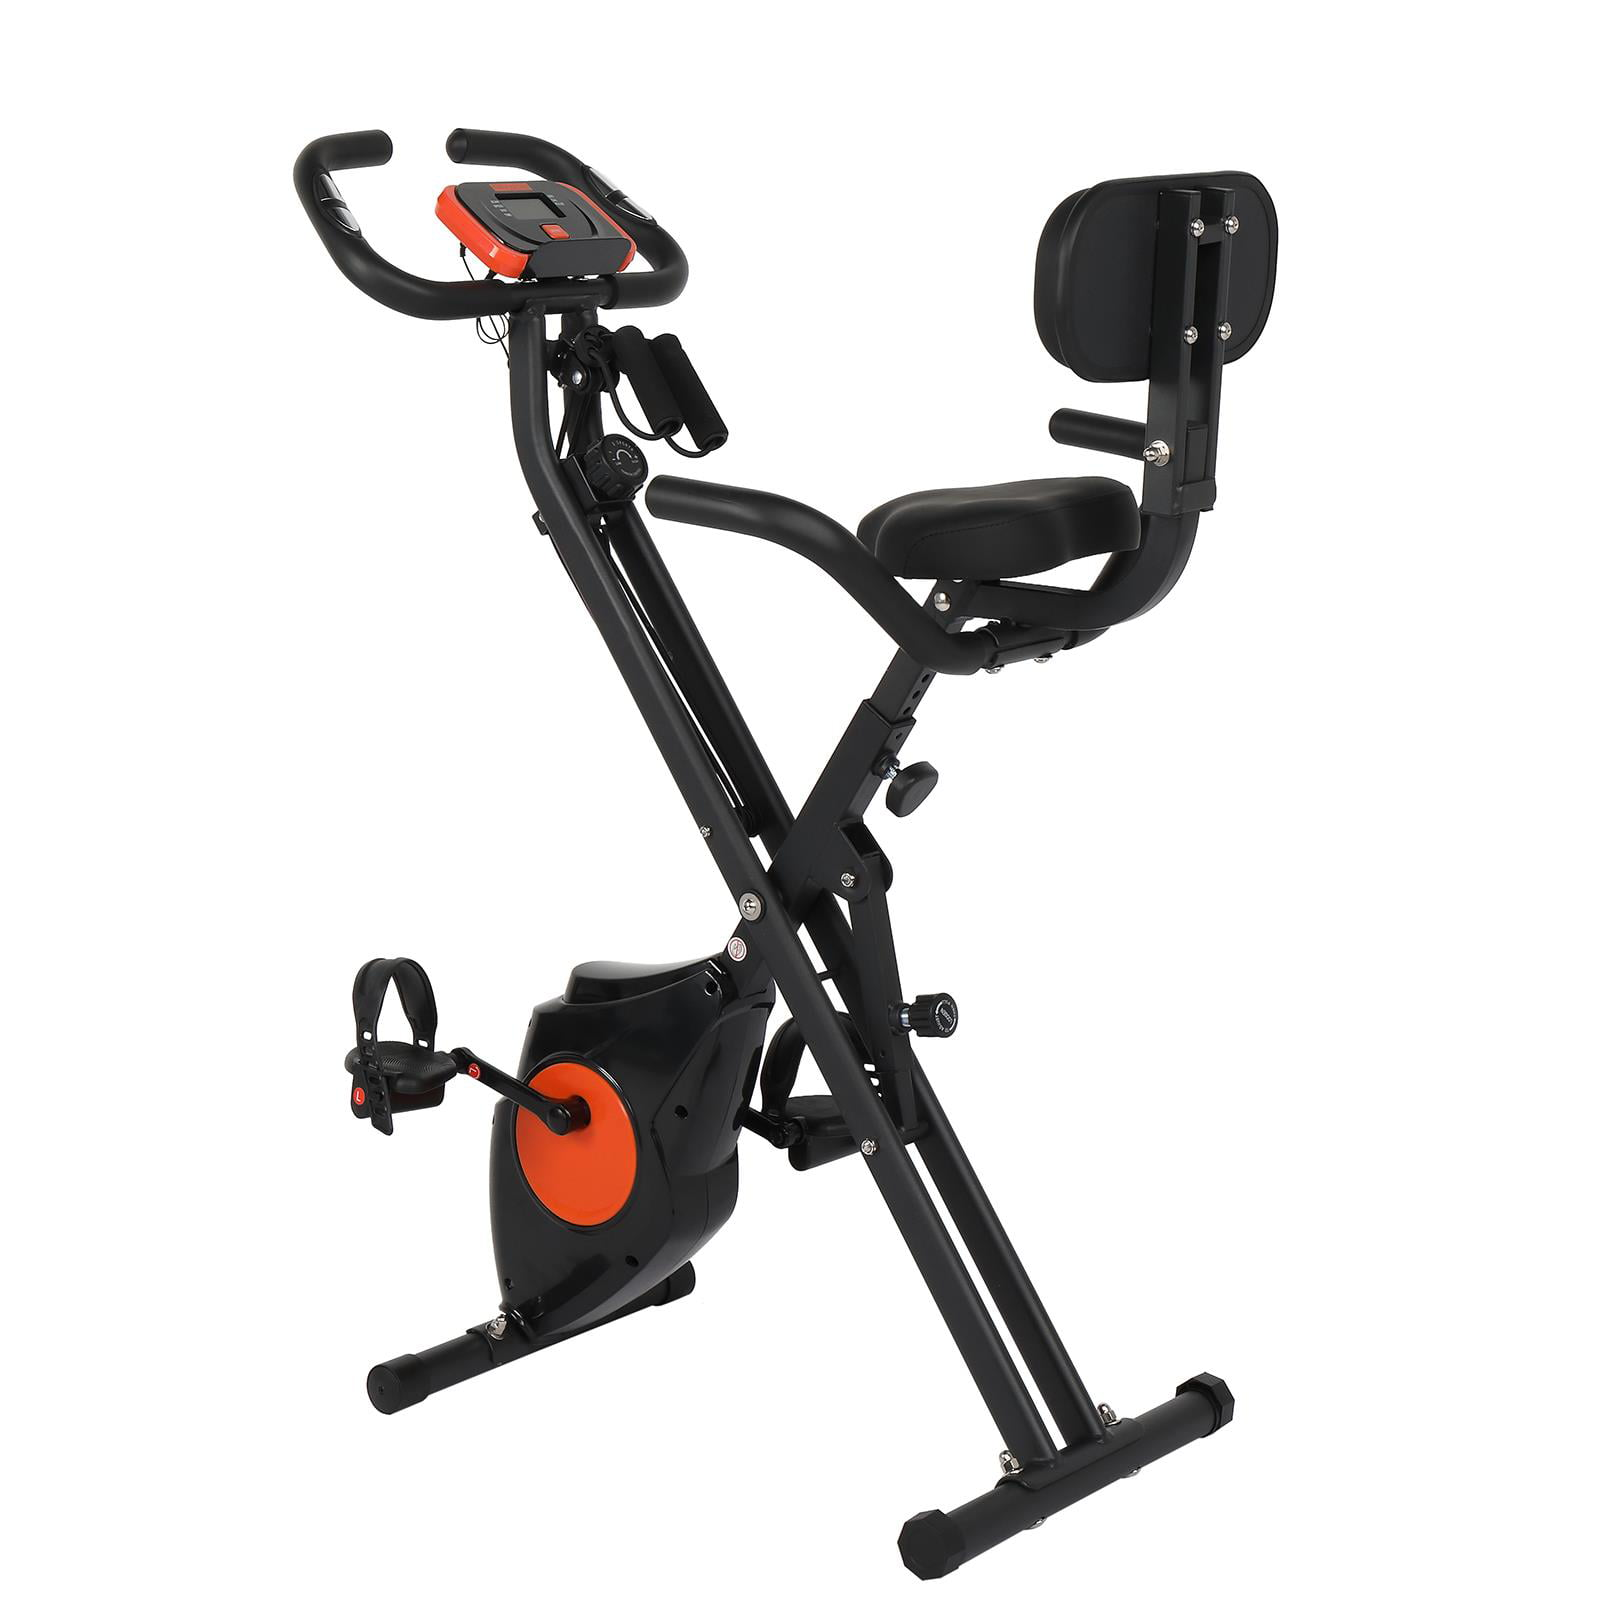 Details about  /Folding Exercise Bike with 8-Level Adjustable Resistance Home Fitness US Stock